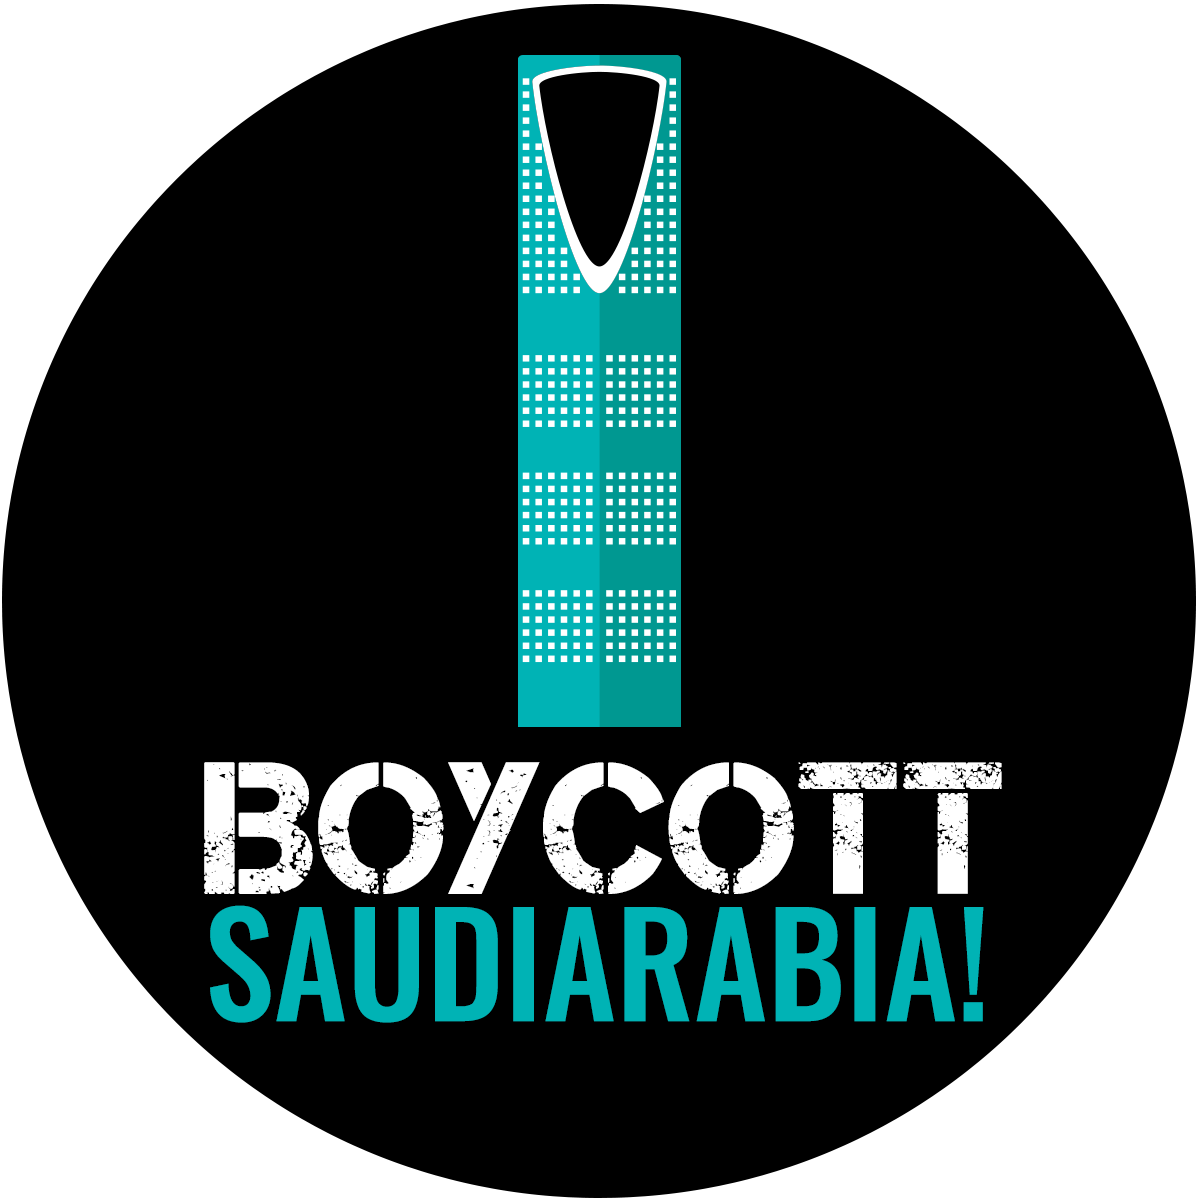 |It's time to sever ties with Saudi Arabia until it ends its war on Yemen and the repression of women, journalists, and people who engage in peaceful dissent.